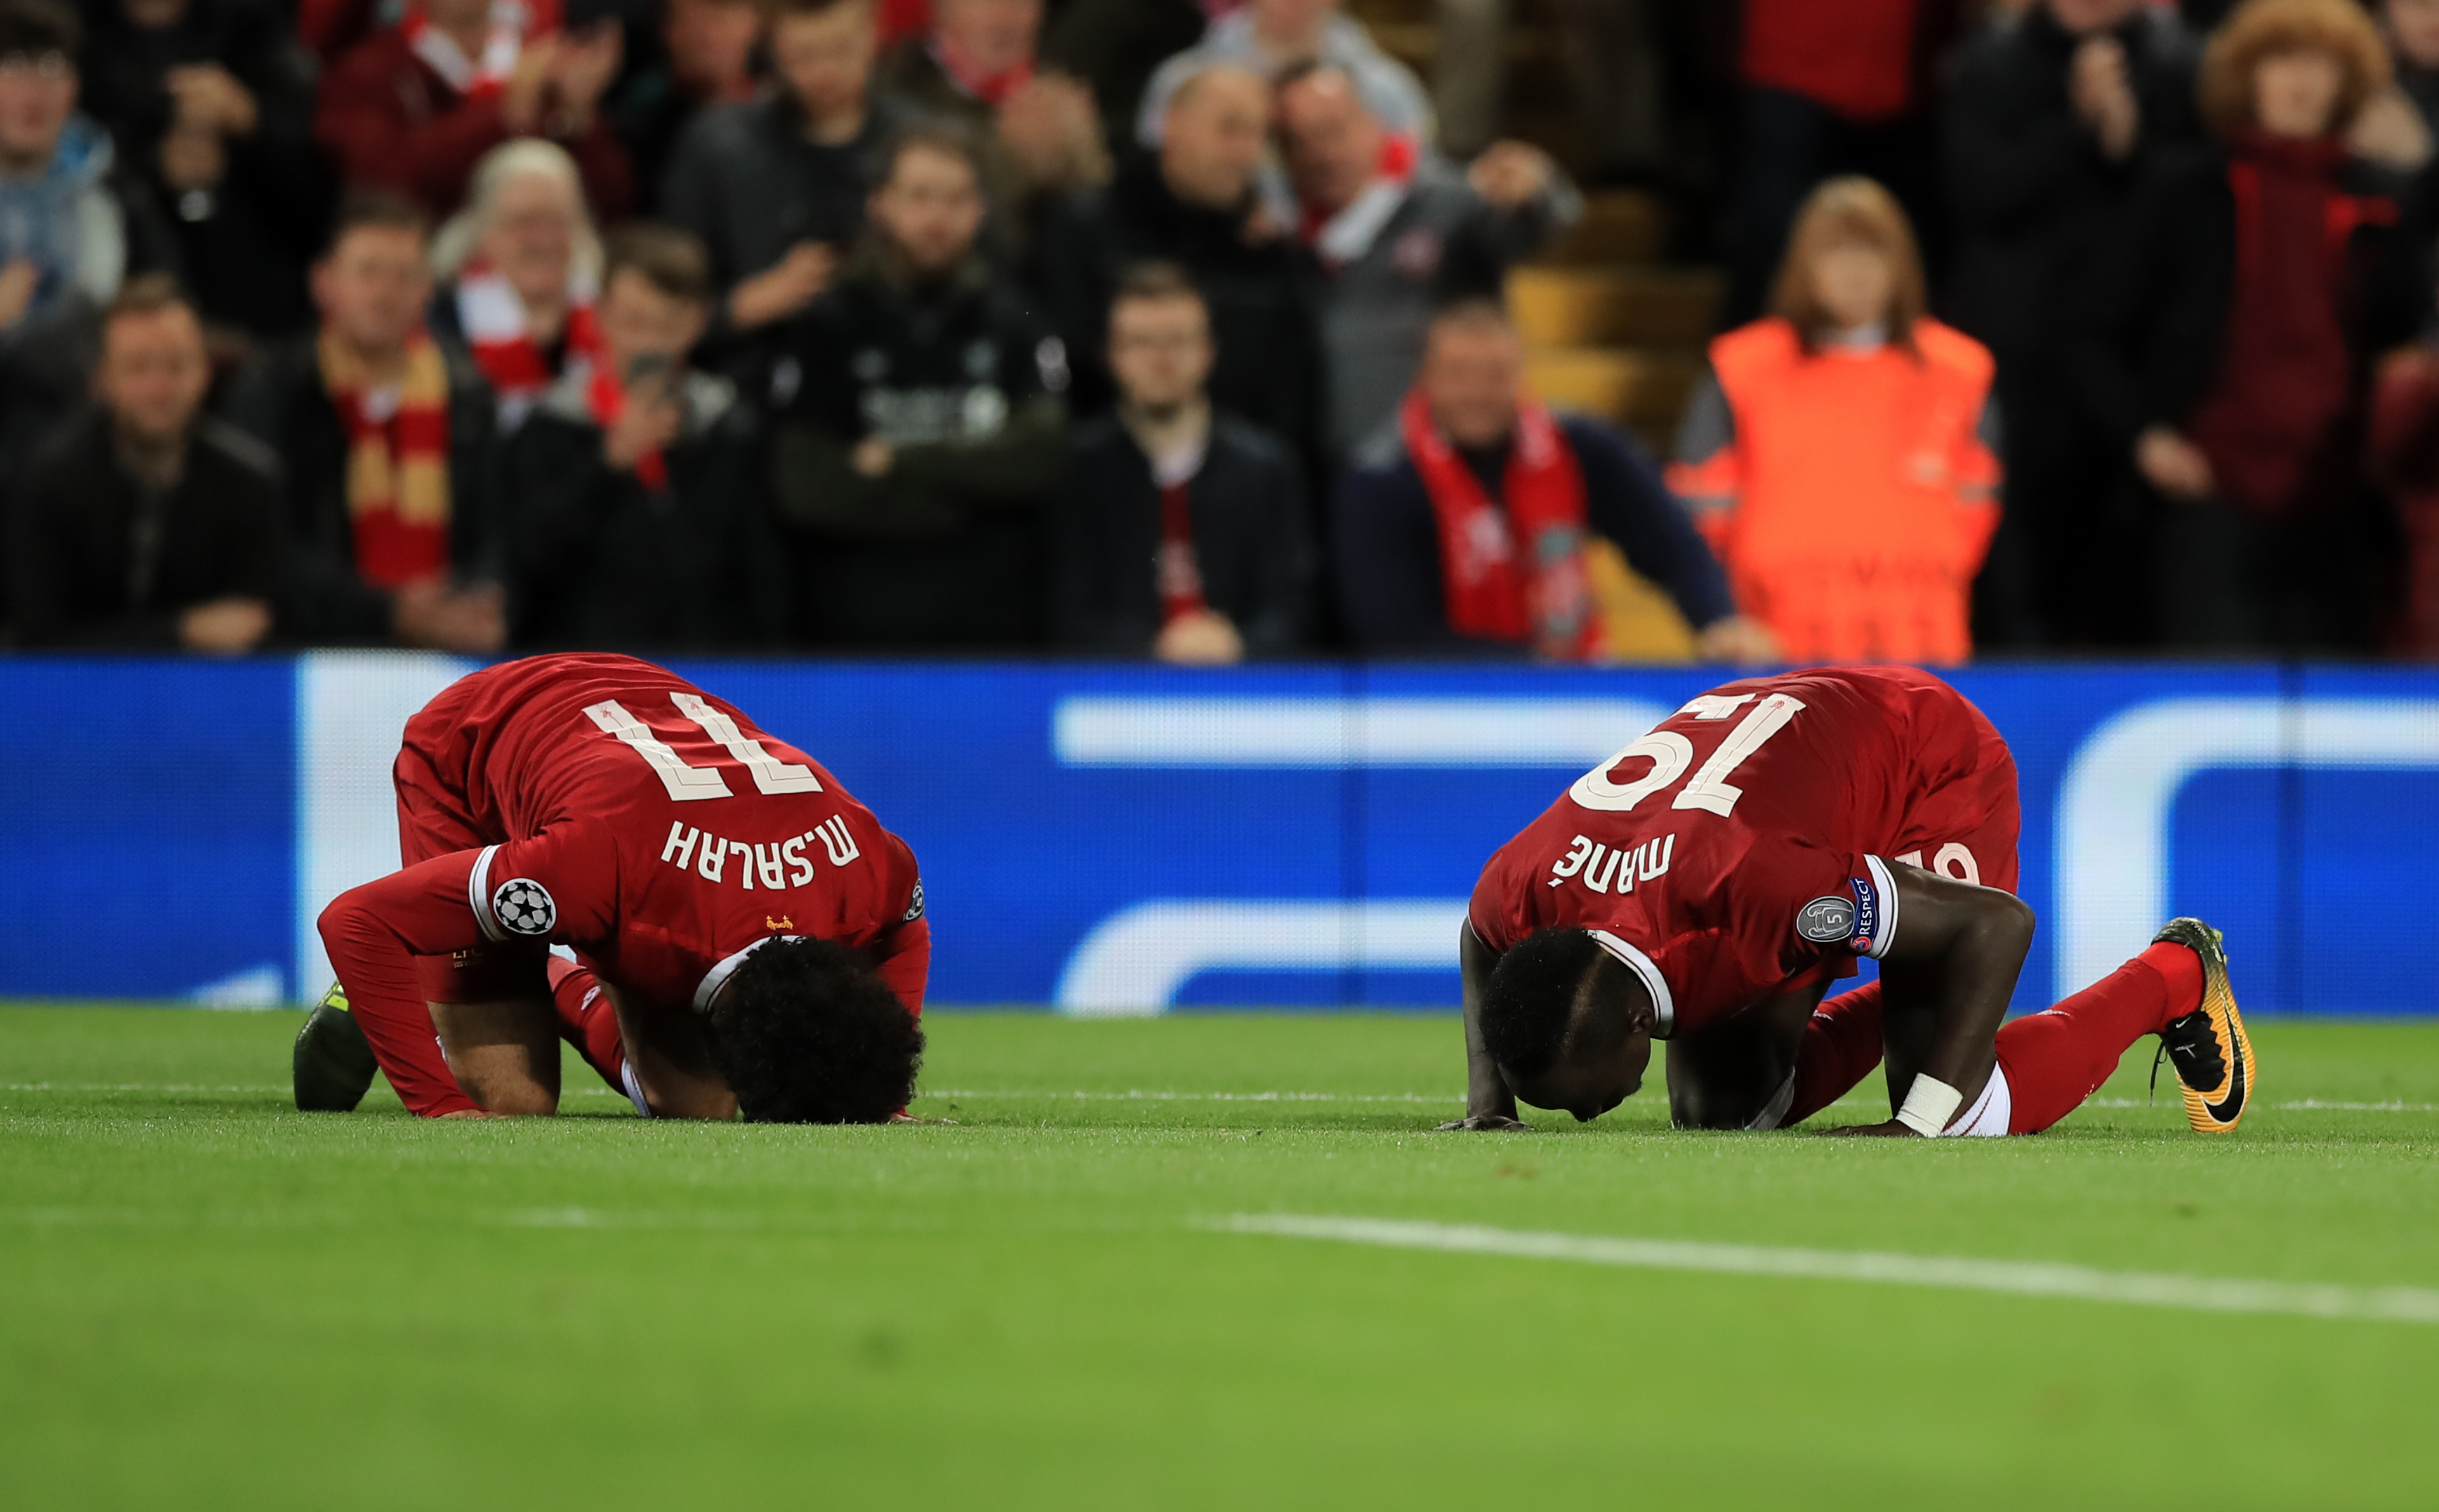 Liverpool's Sadio Mané ruled out for up to six weeks after injuring hamstring